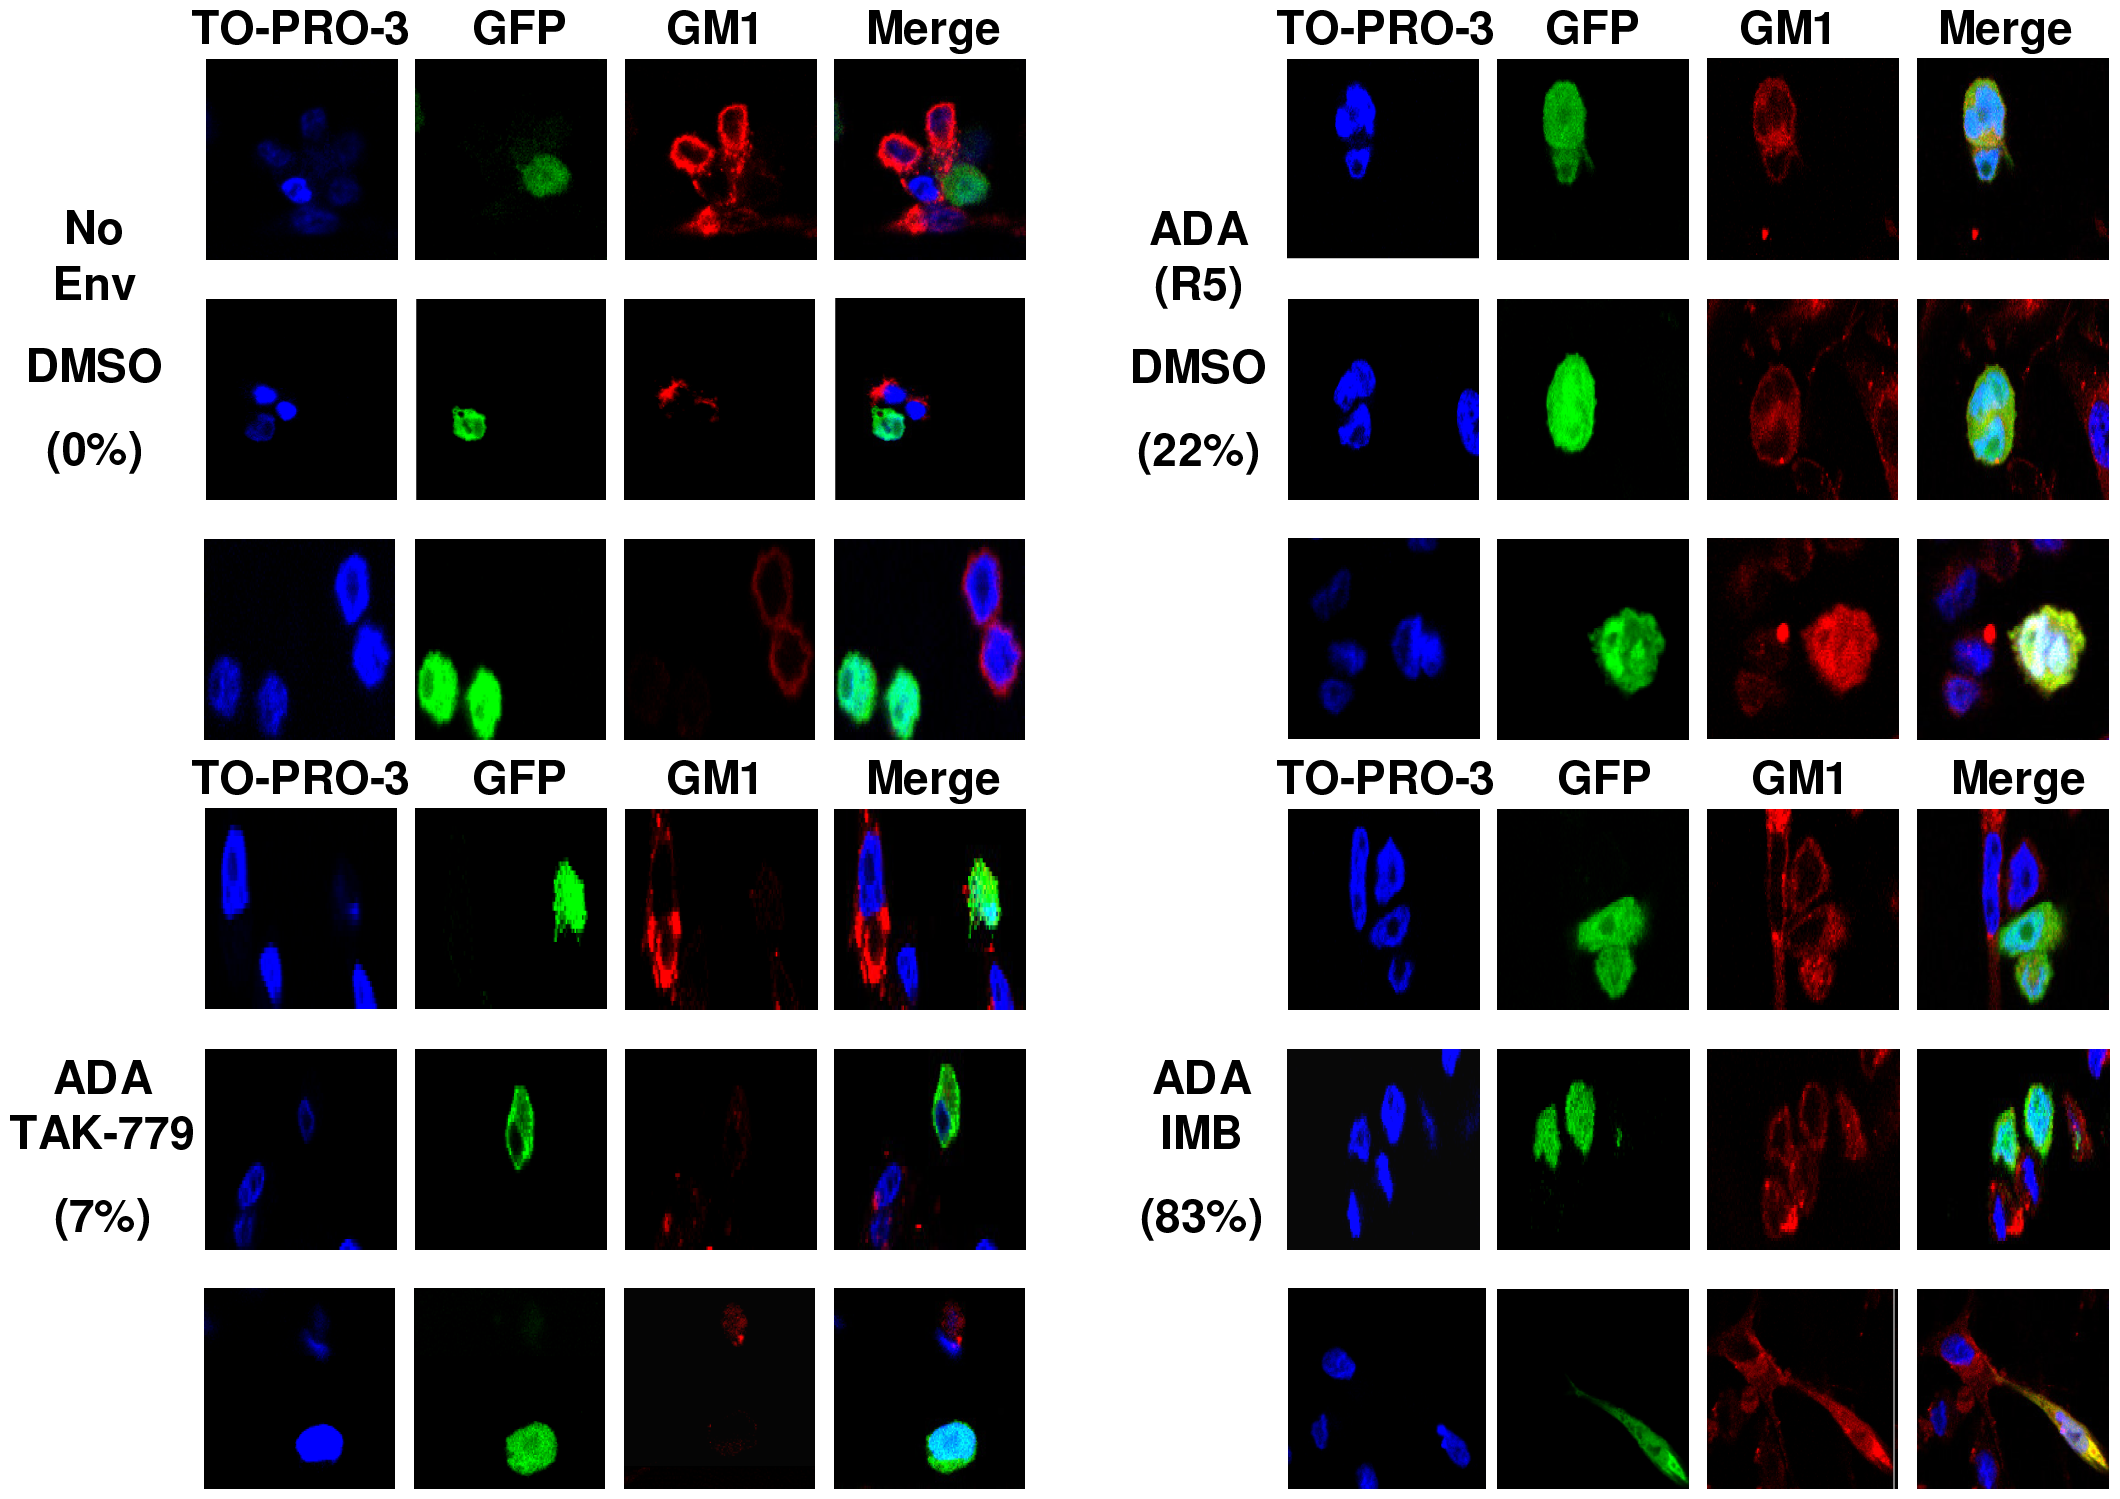 Abl kinase inhibitors arrest HIV-1 Env-mediated fusion at the hemifusion step.